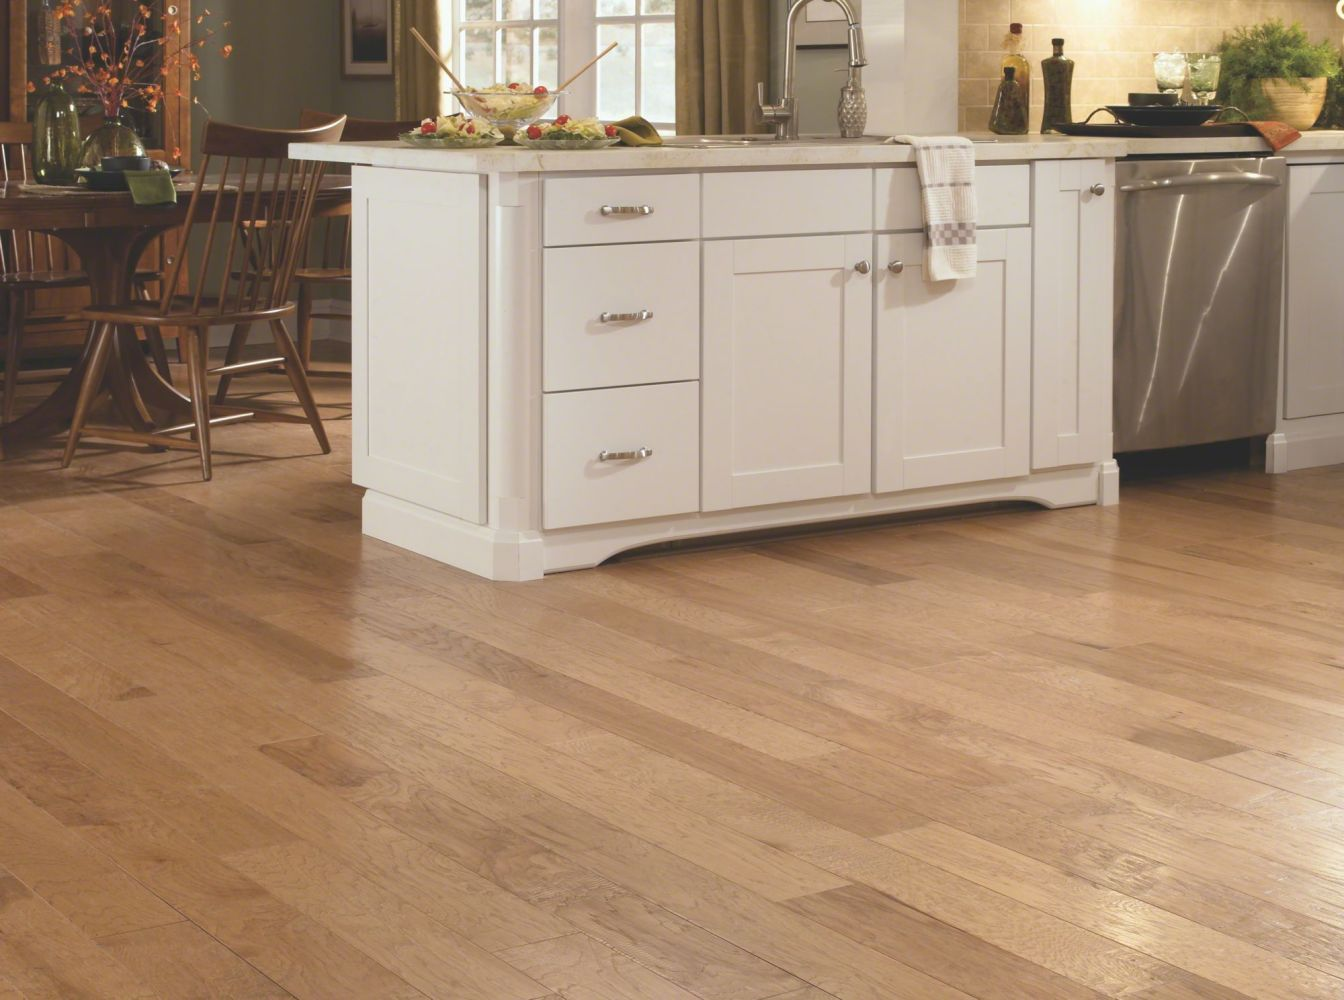 Shaw Floors Home Fn Gold Hardwood Nottoway Hickory II – 5″ Prairie Dust 00144_HW612